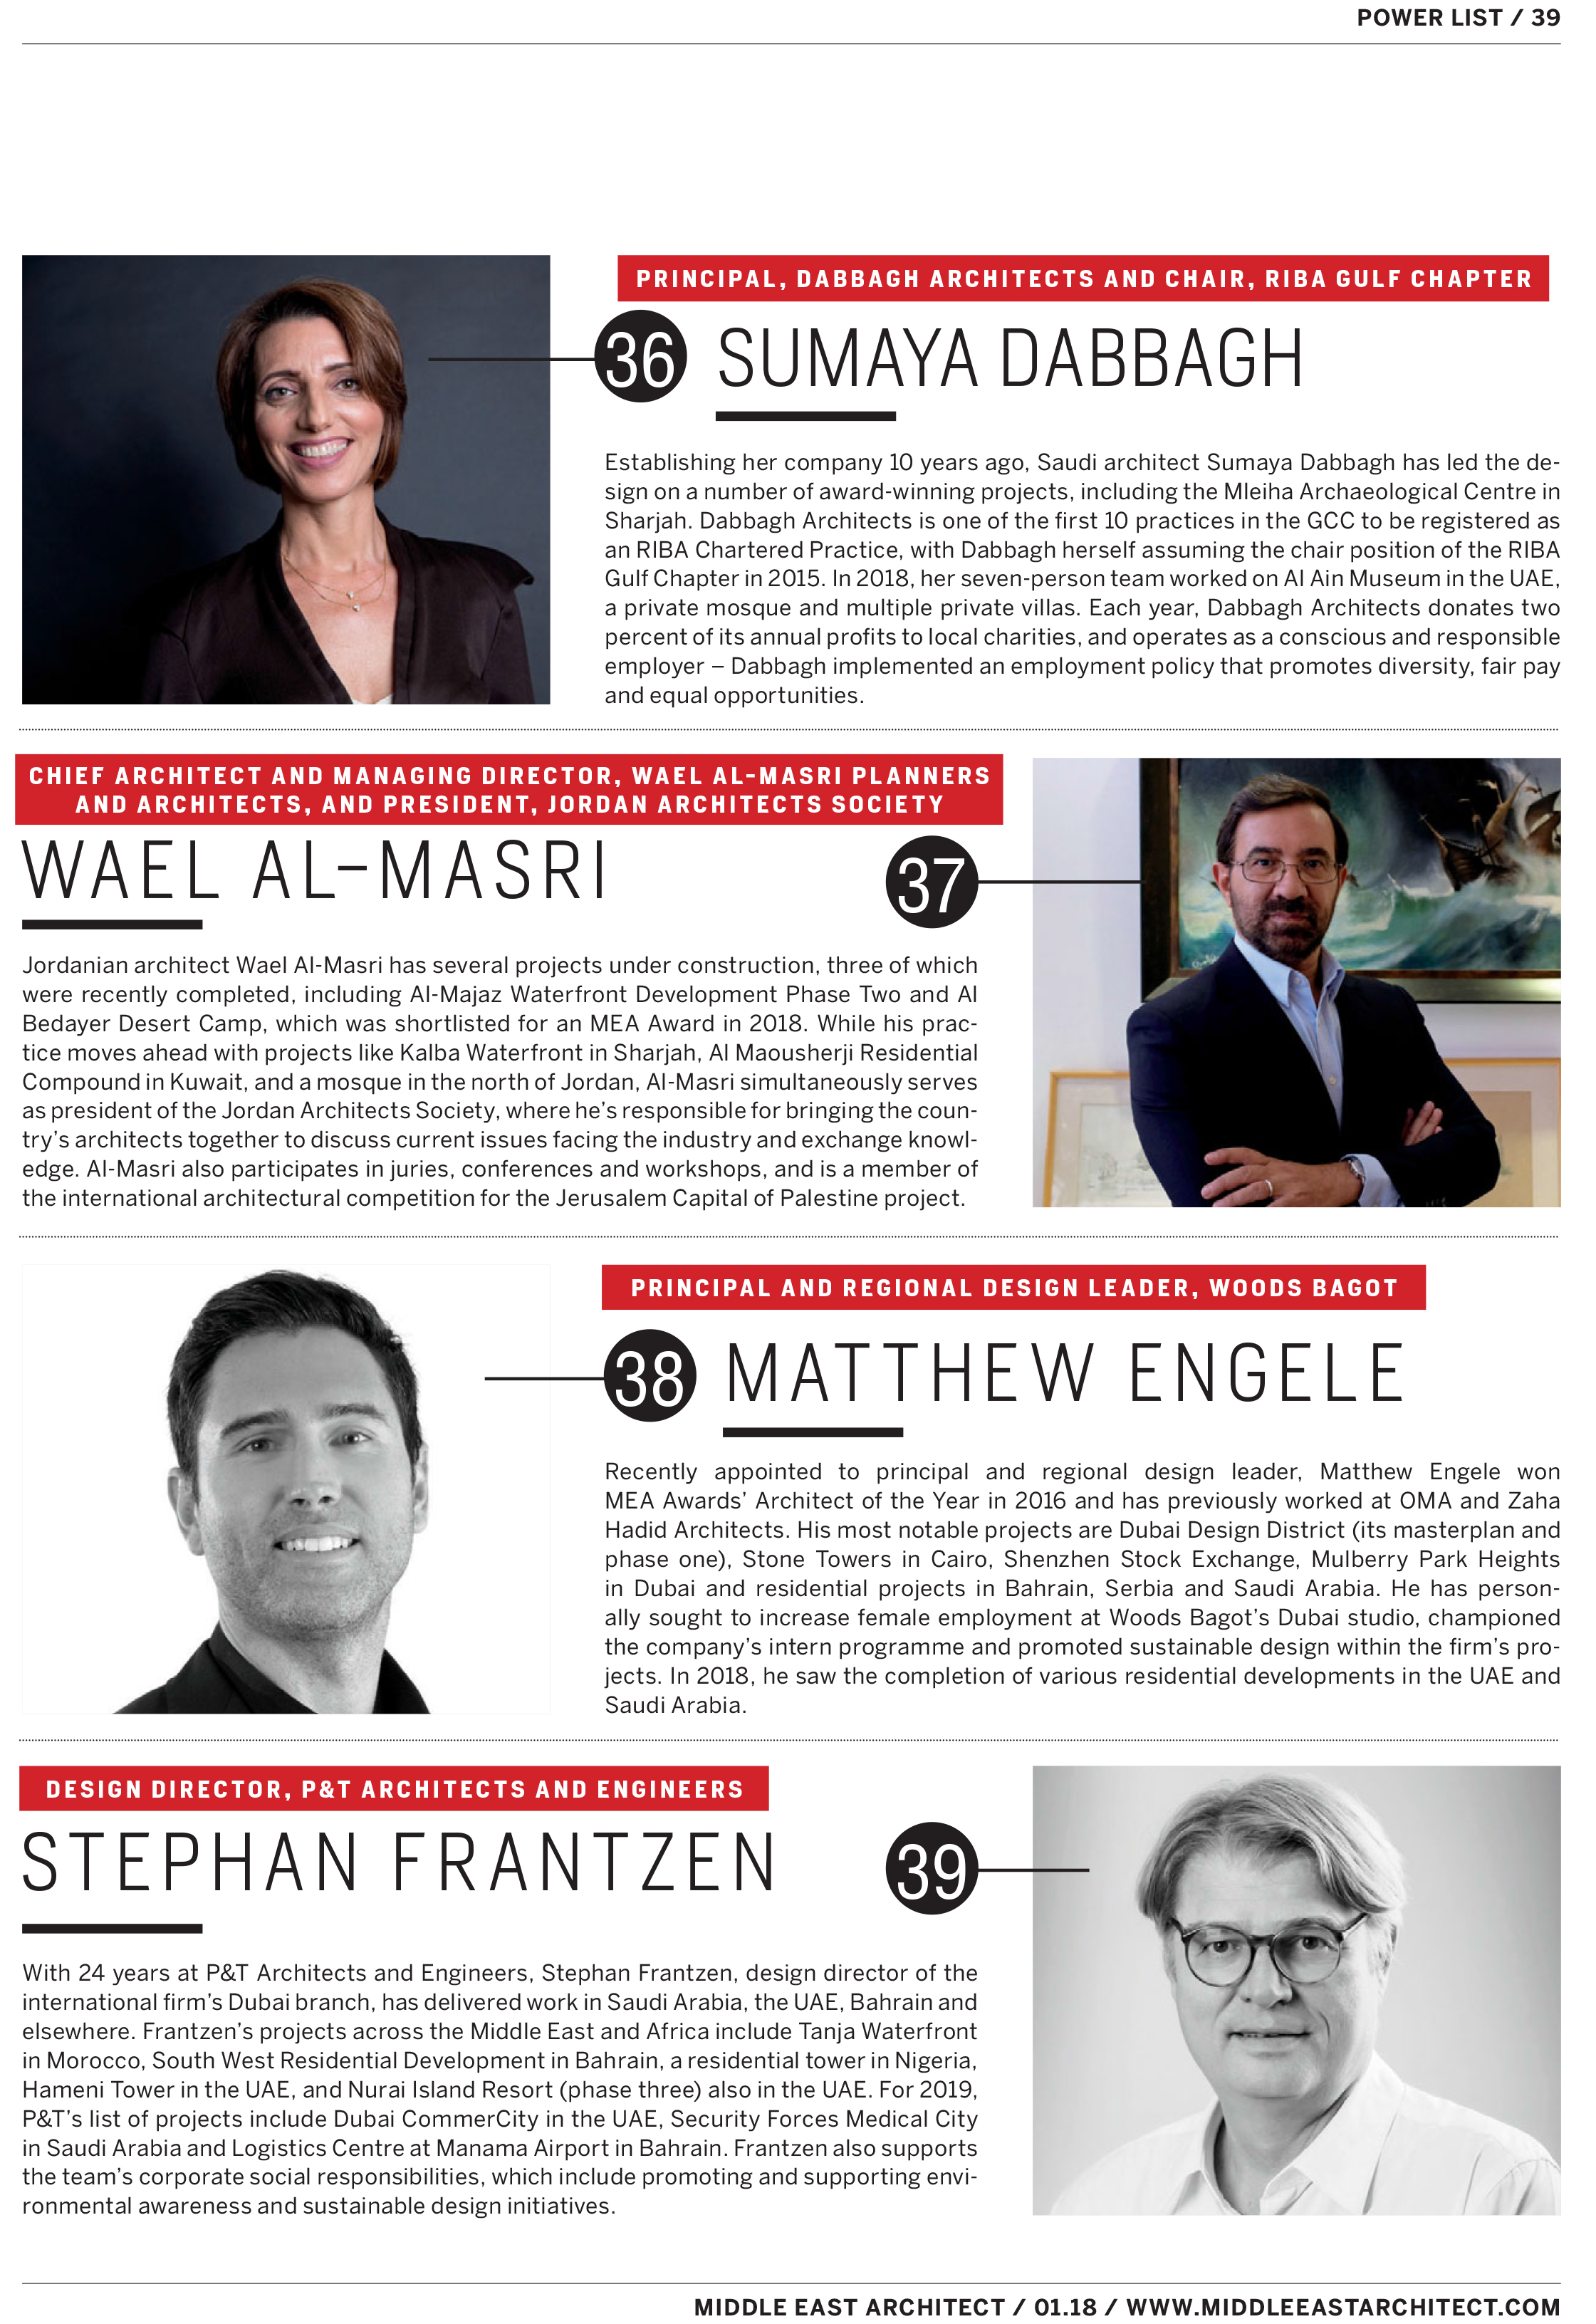 Architect Middle East- Power List 2019